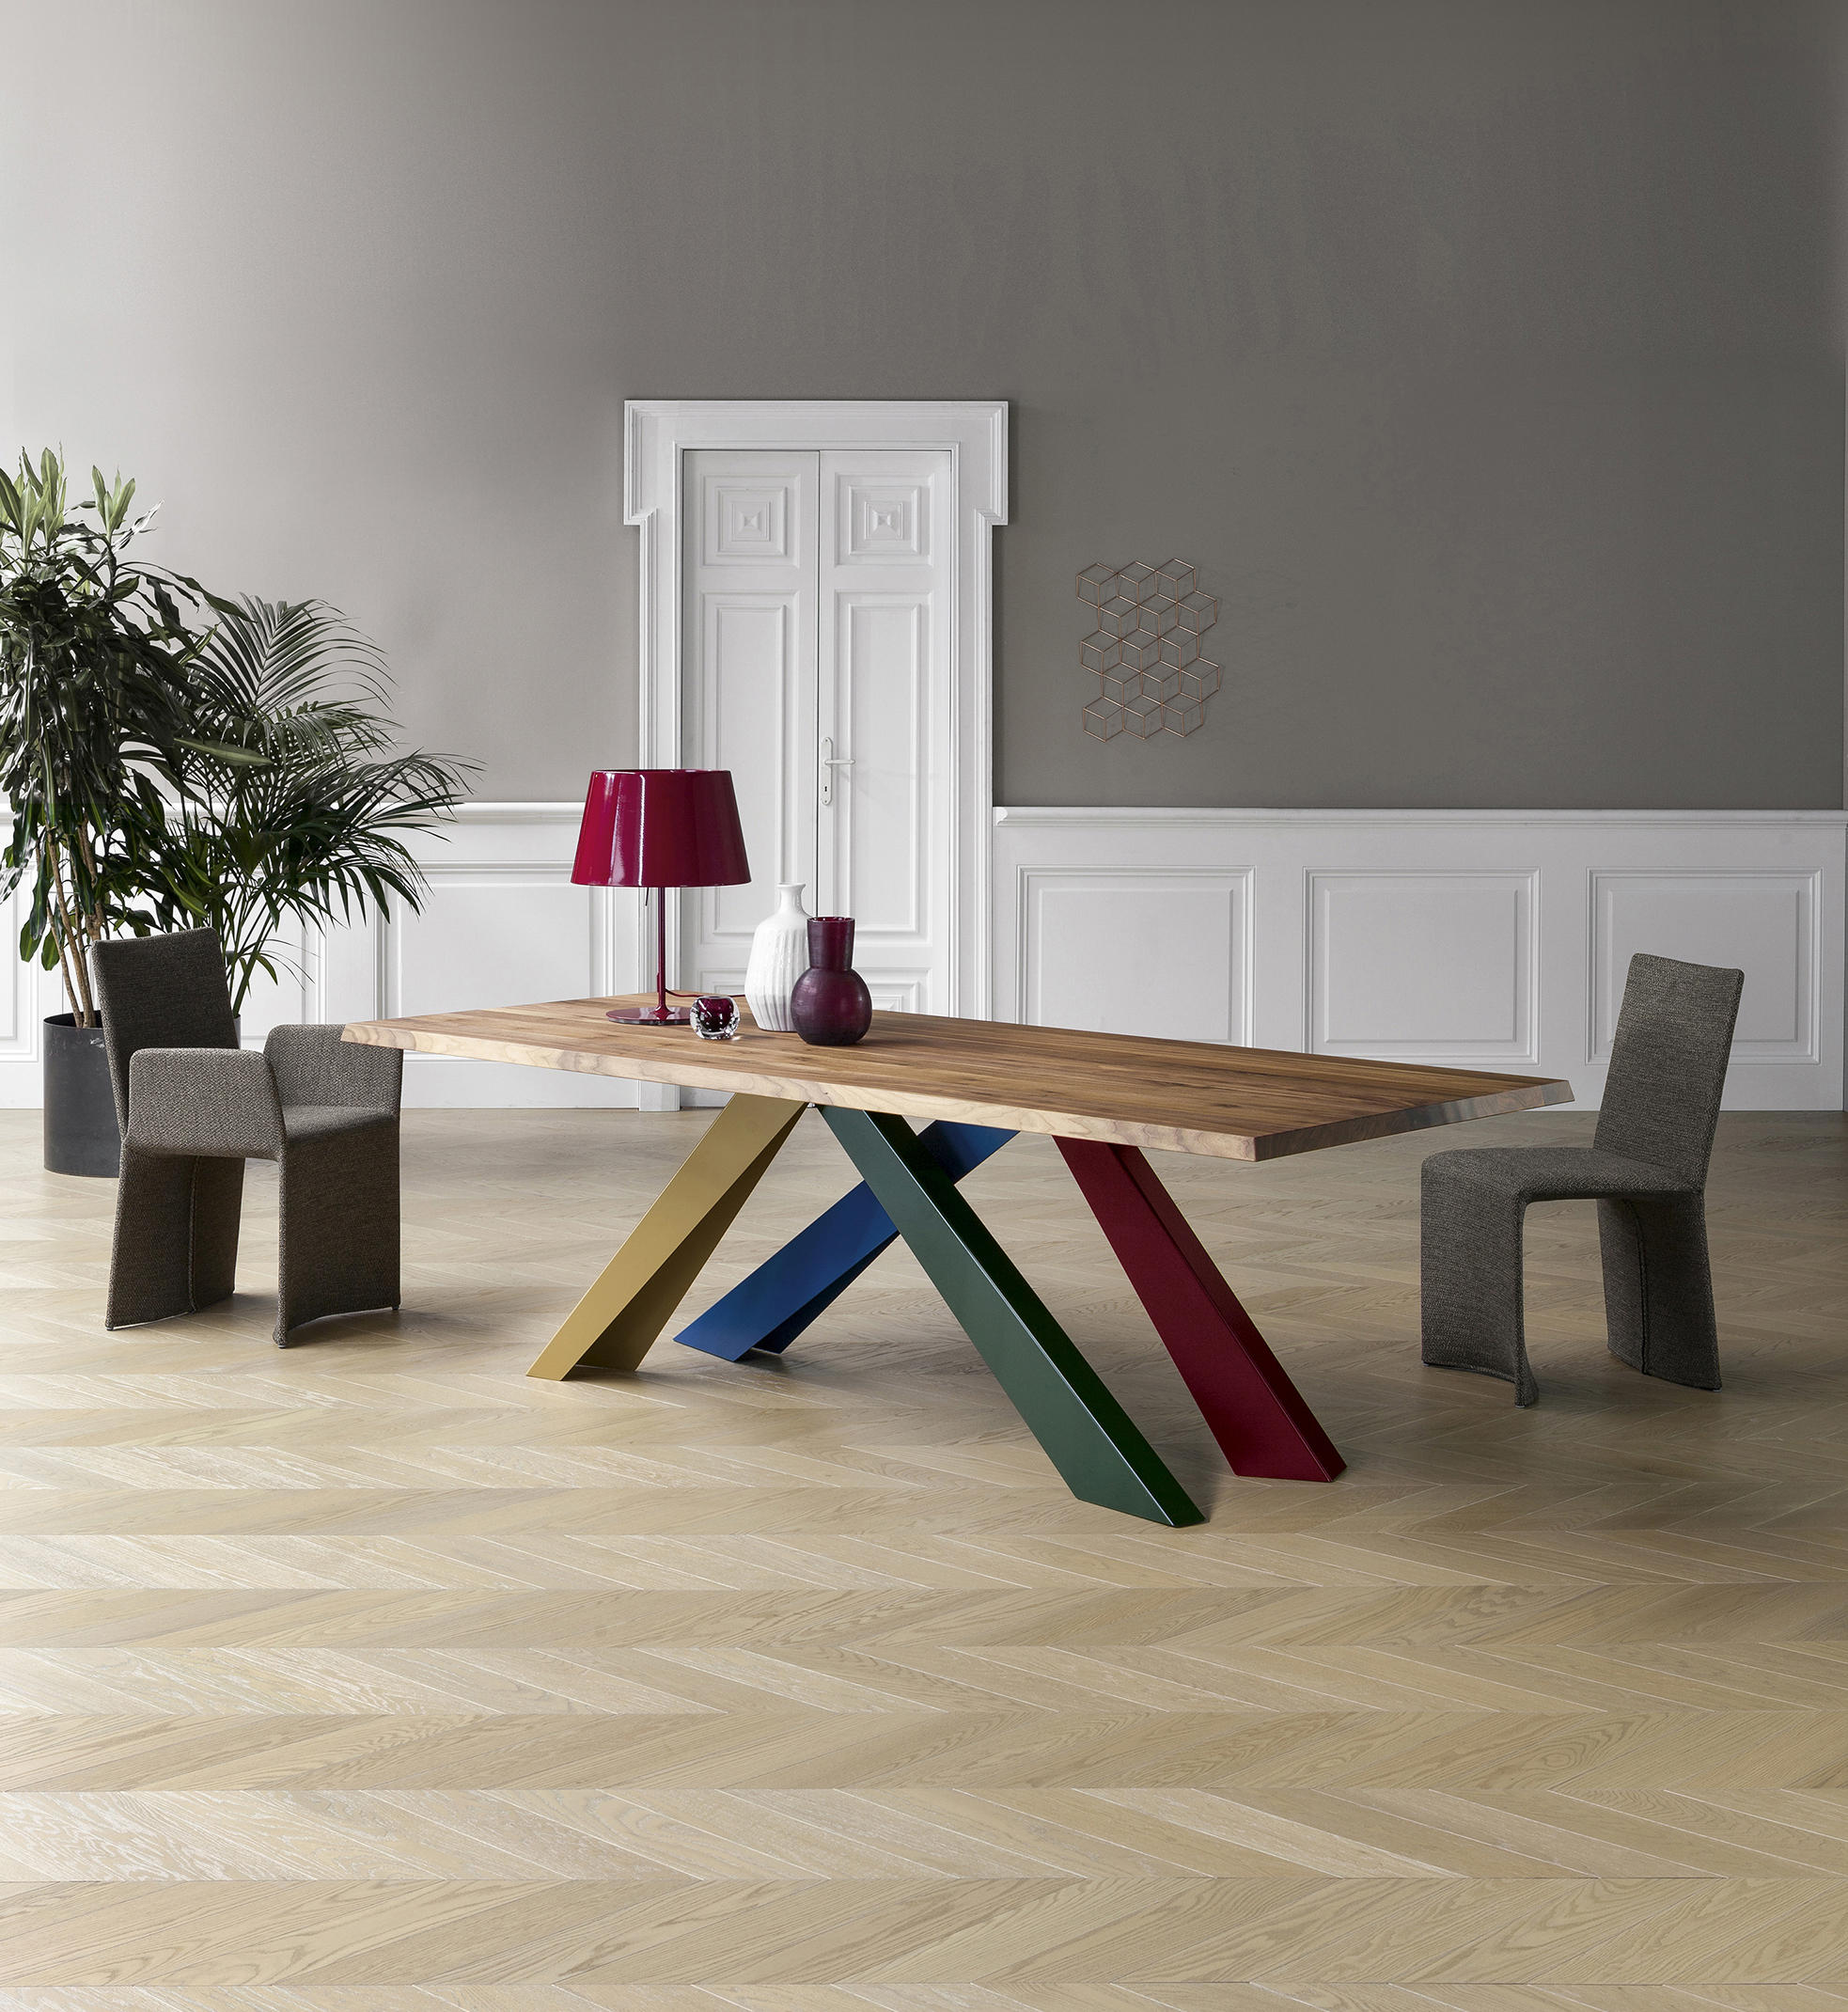 BIG TABLE - Restaurant tables from Bonaldo | Architonic